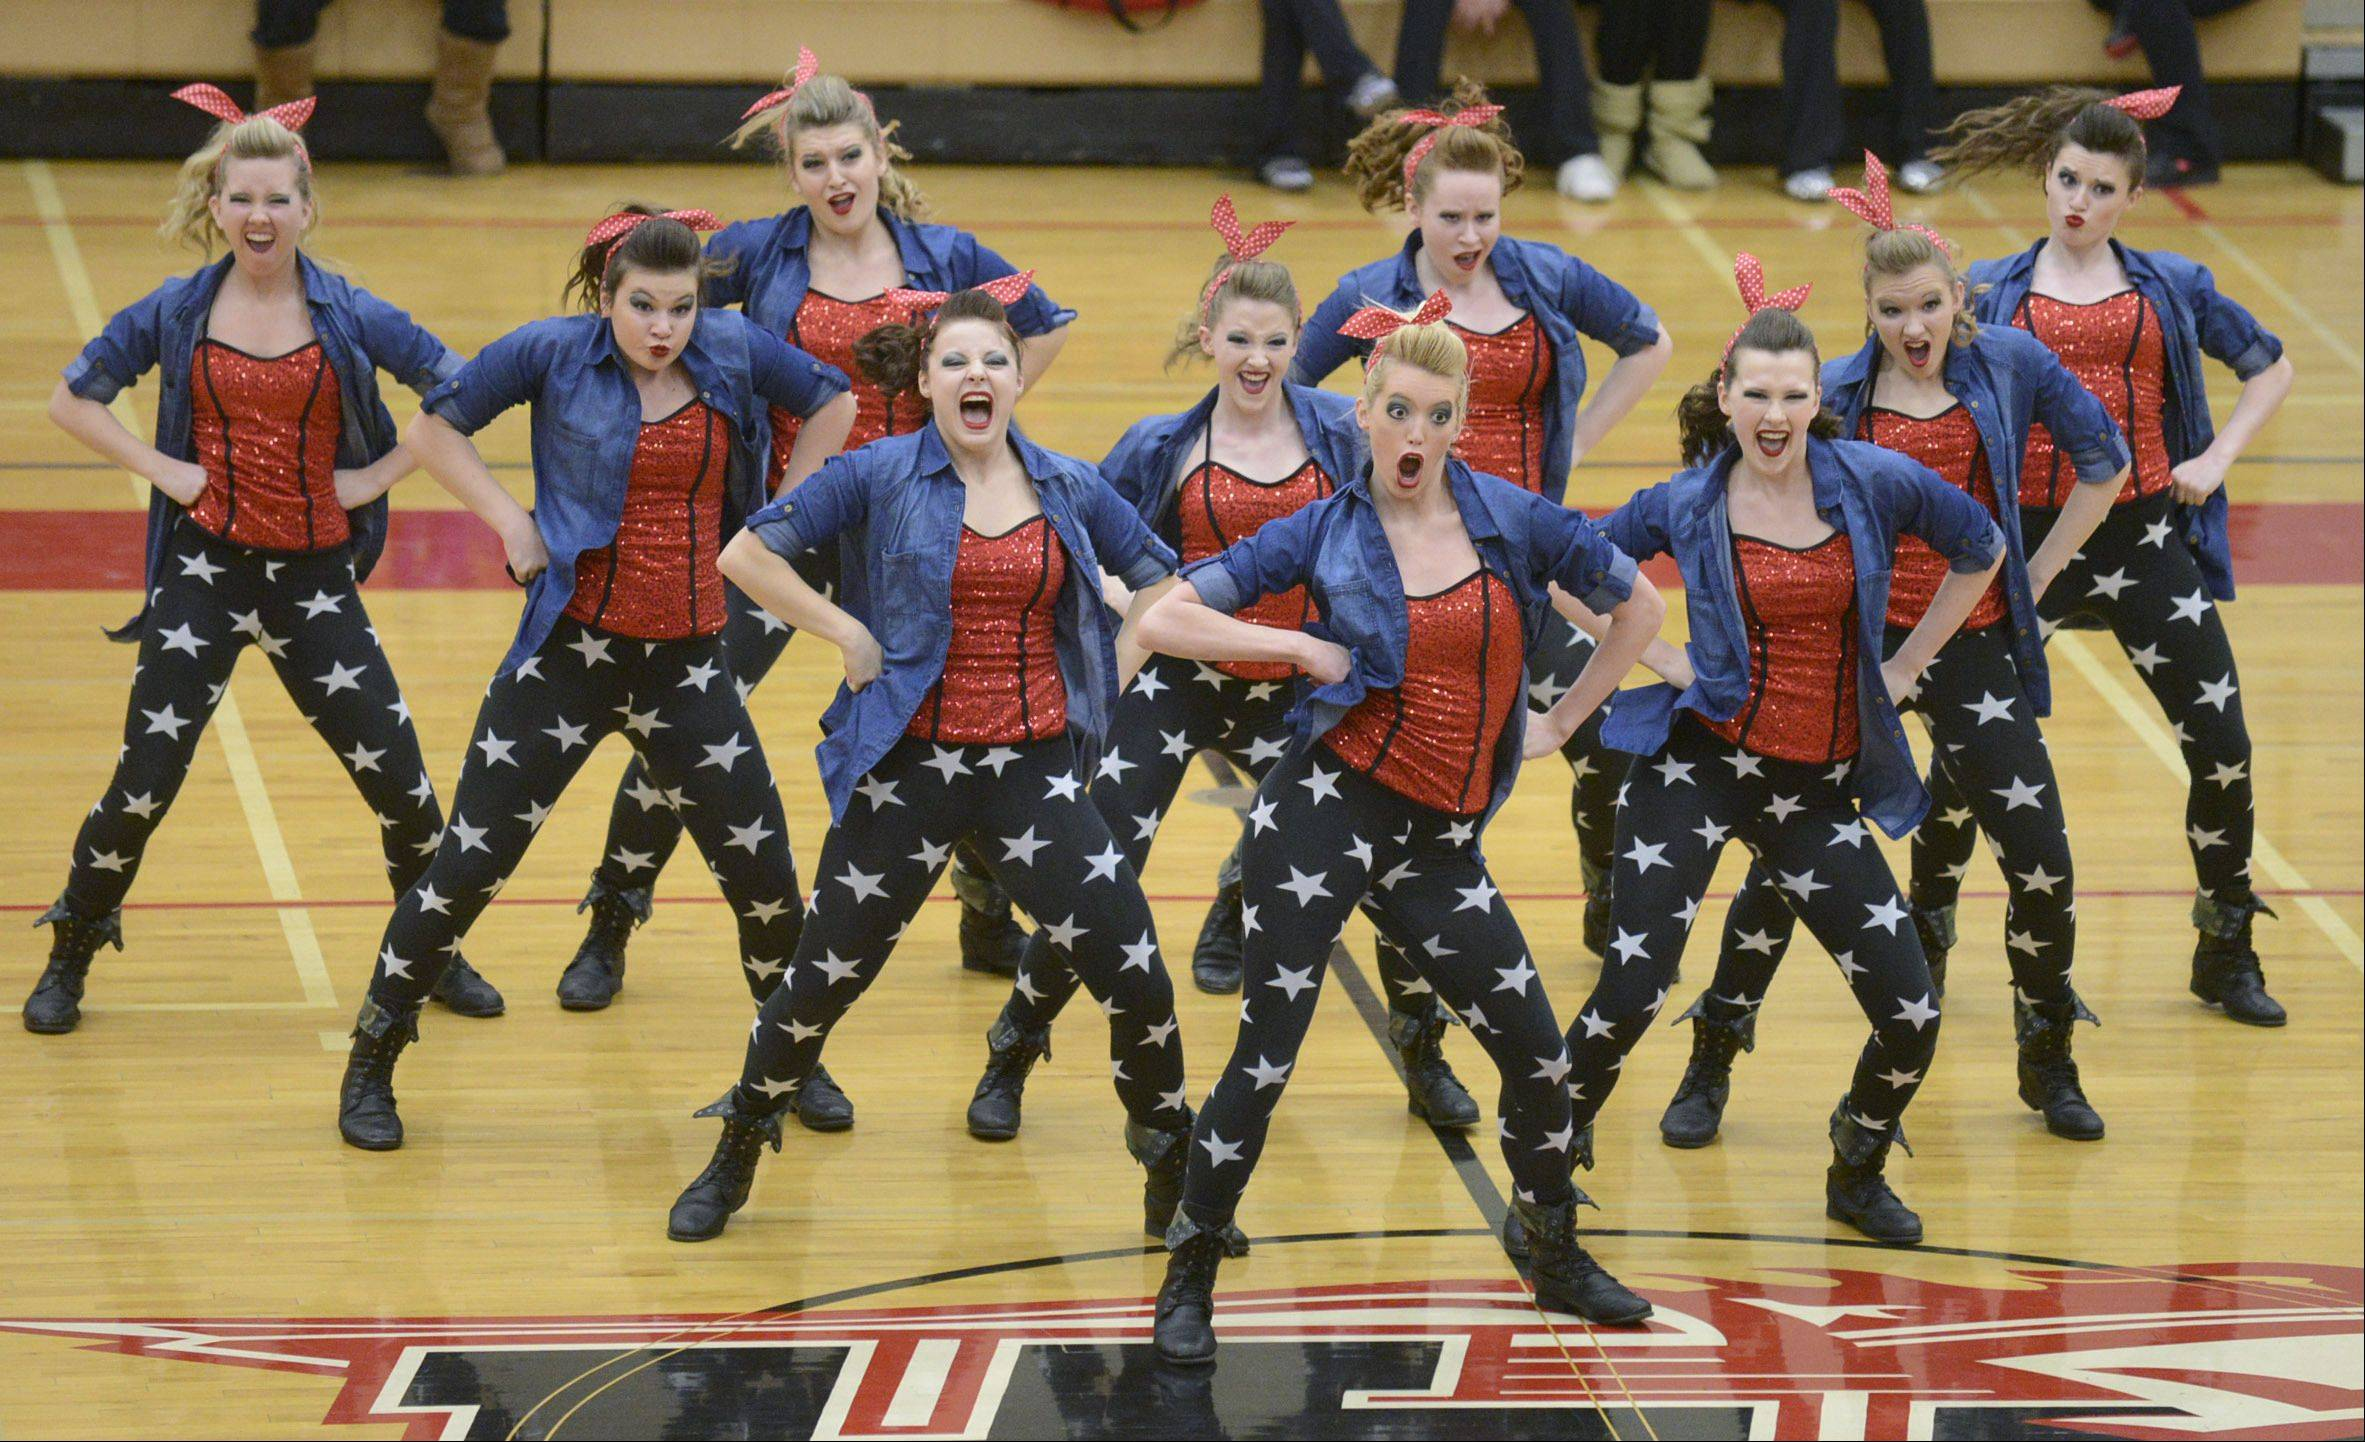 Grant High School performs in the IHSA 2A competitive dance sectionals at Huntley High School on Saturday, January 25.